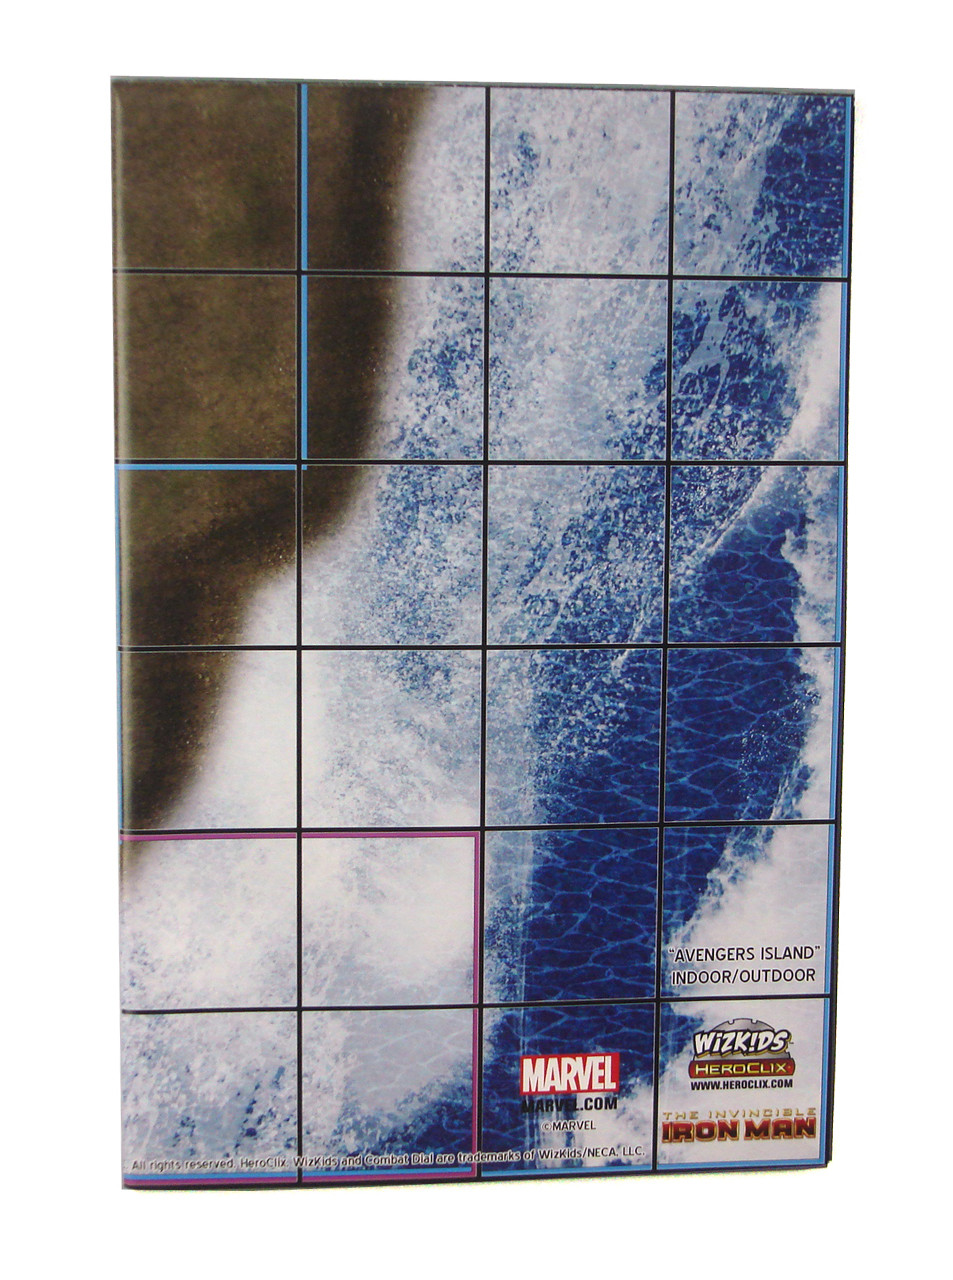 Iron man office Kinetic Marvel Heroclix 2sided Map The Invincible Iron Man Avengers Island Office Building Boondock Collectibles Marvel Heroclix 2sided Map The Invincible Iron Man Avengers